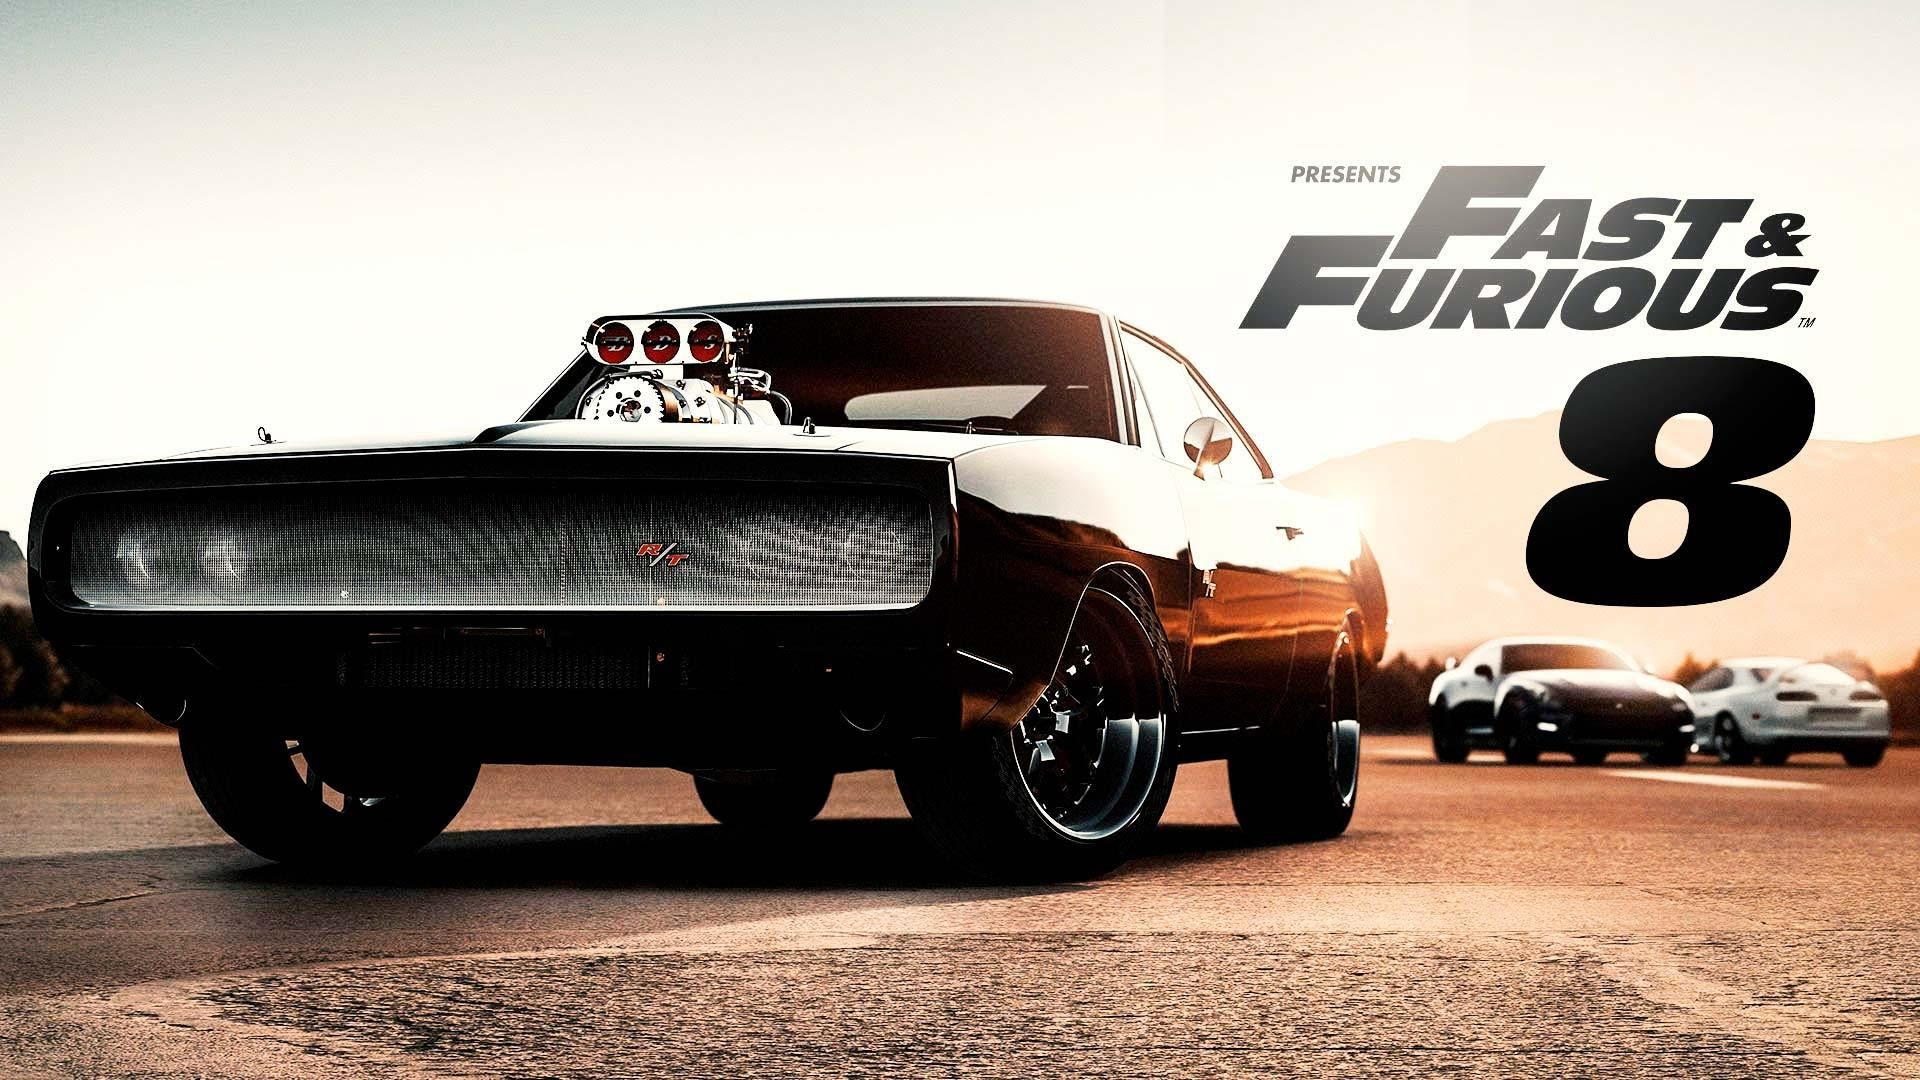 Fast Furious Hd Wallpapers Backgrounds Wallpaper Fast And